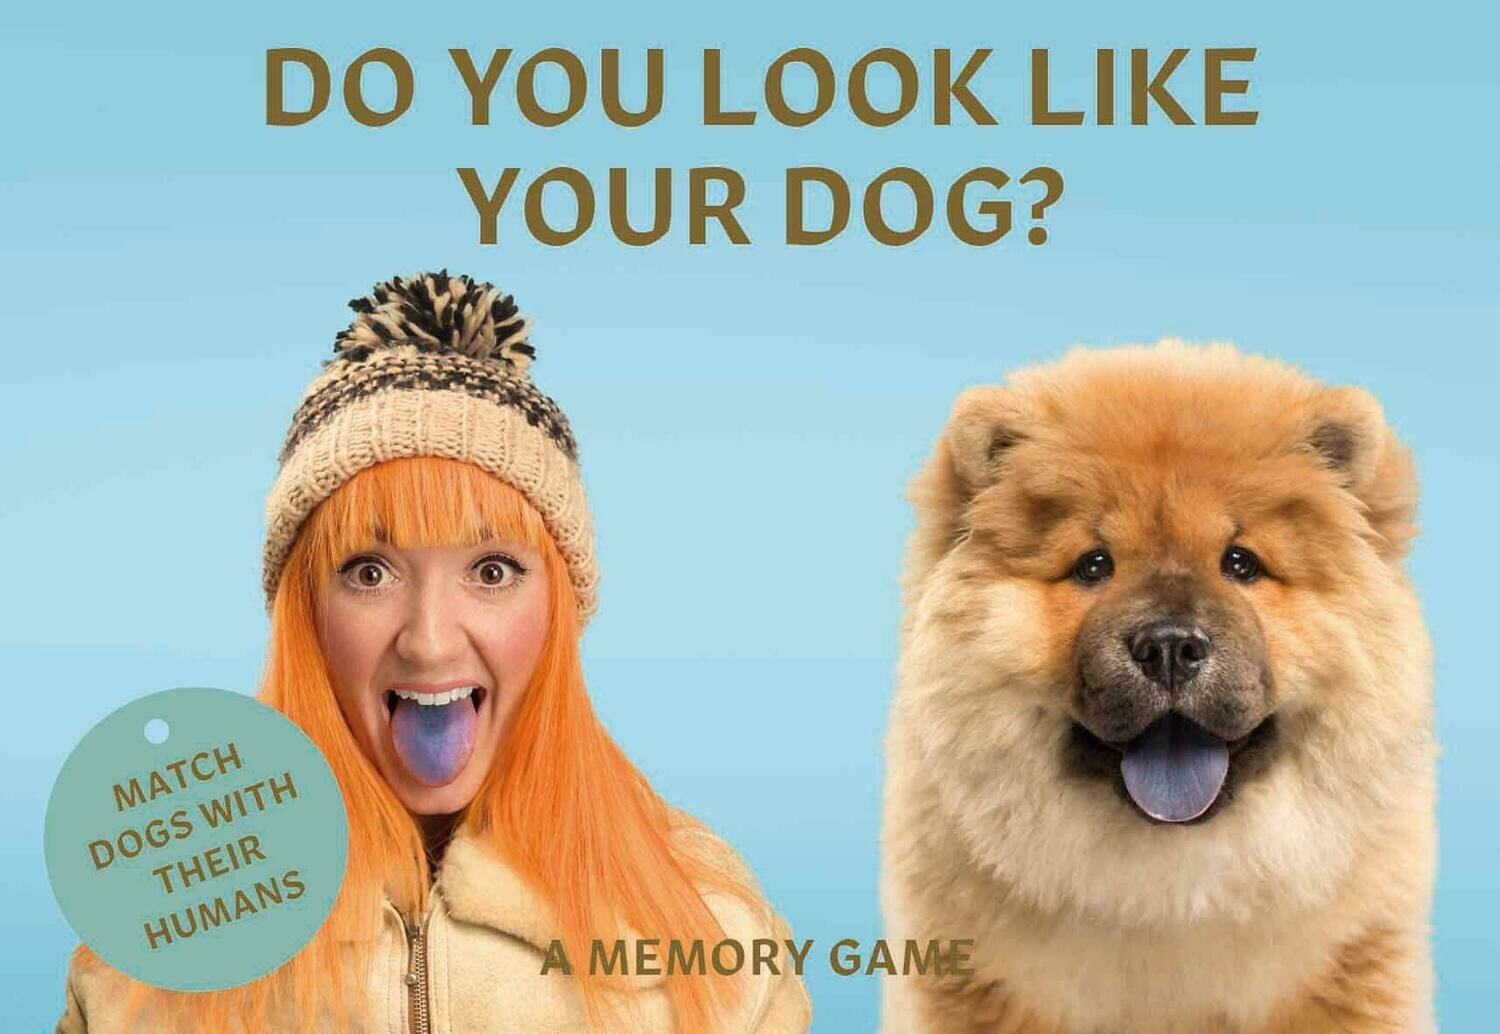 Do you look like your dog memory game